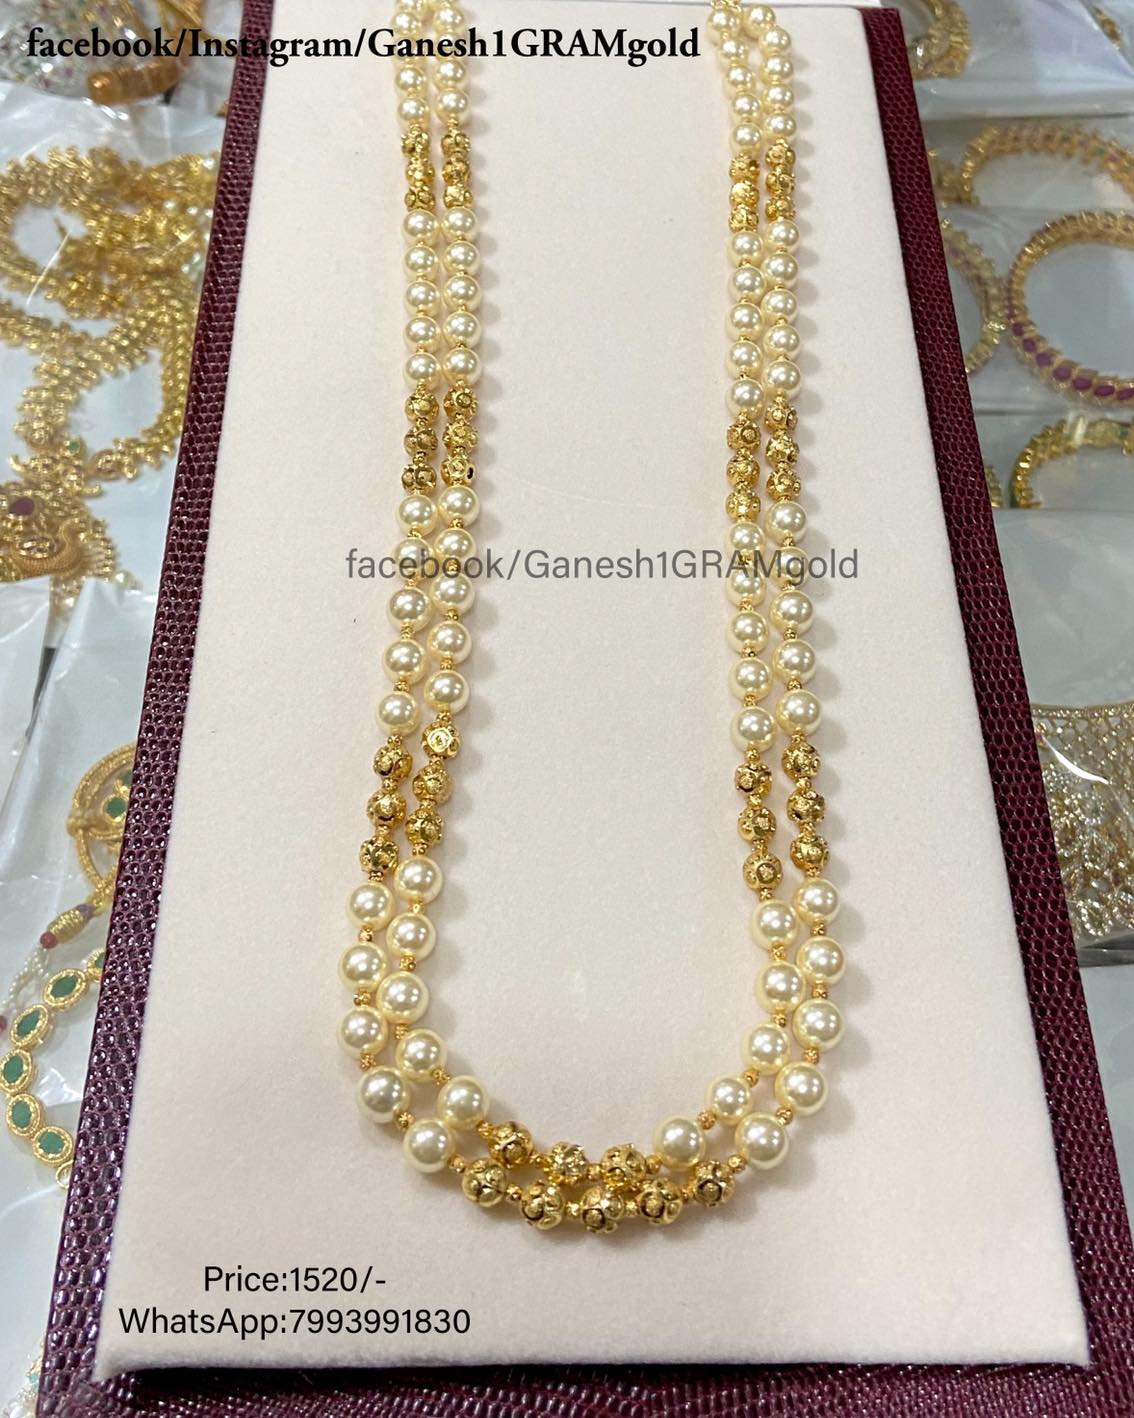 Semi pearls beads with Gold balls mala...1st Quality Real pic Price:1520/- Cash on delivery (COD) available 1 gram gold set design 1 gram gold jewellery 1 gram gold sets with price